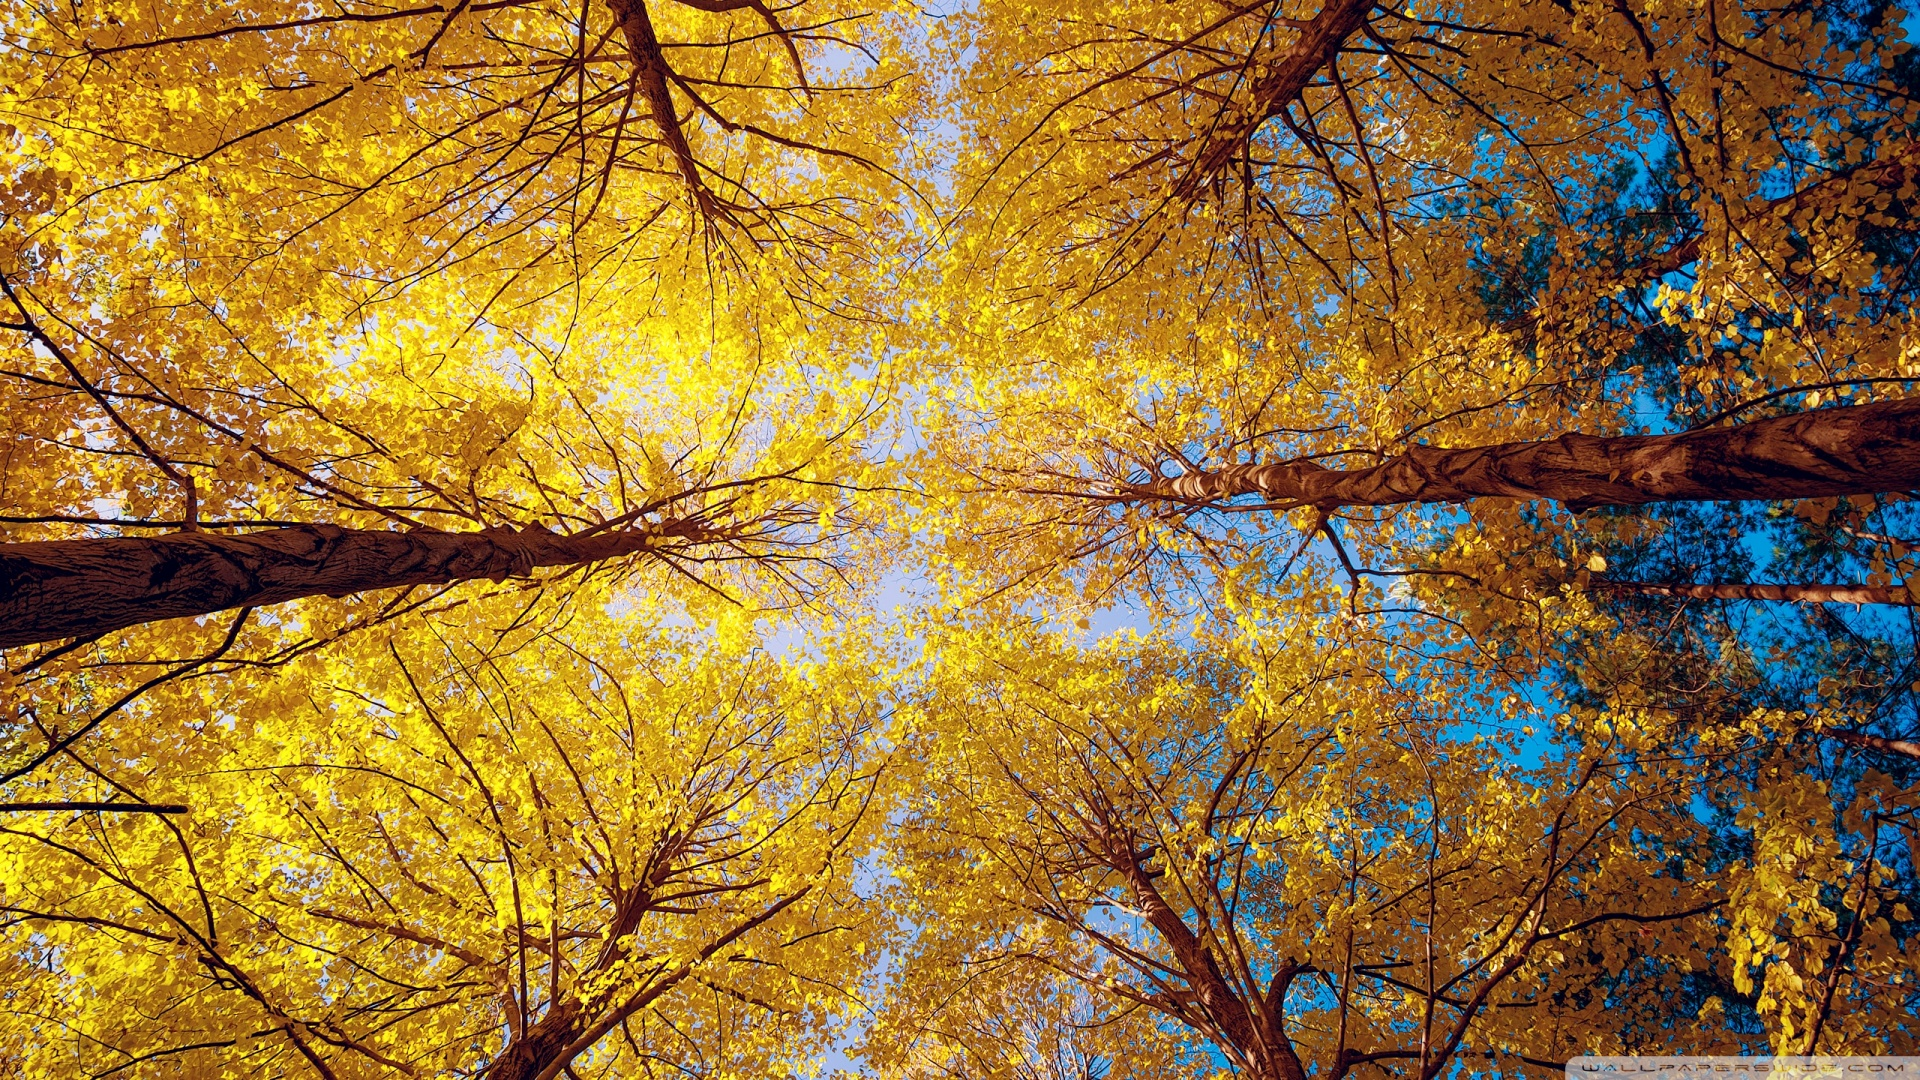 Fall Leaves Hd Mobile Wallpaper Yellow Trees 4k Hd Desktop Wallpaper For 4k Ultra Hd Tv